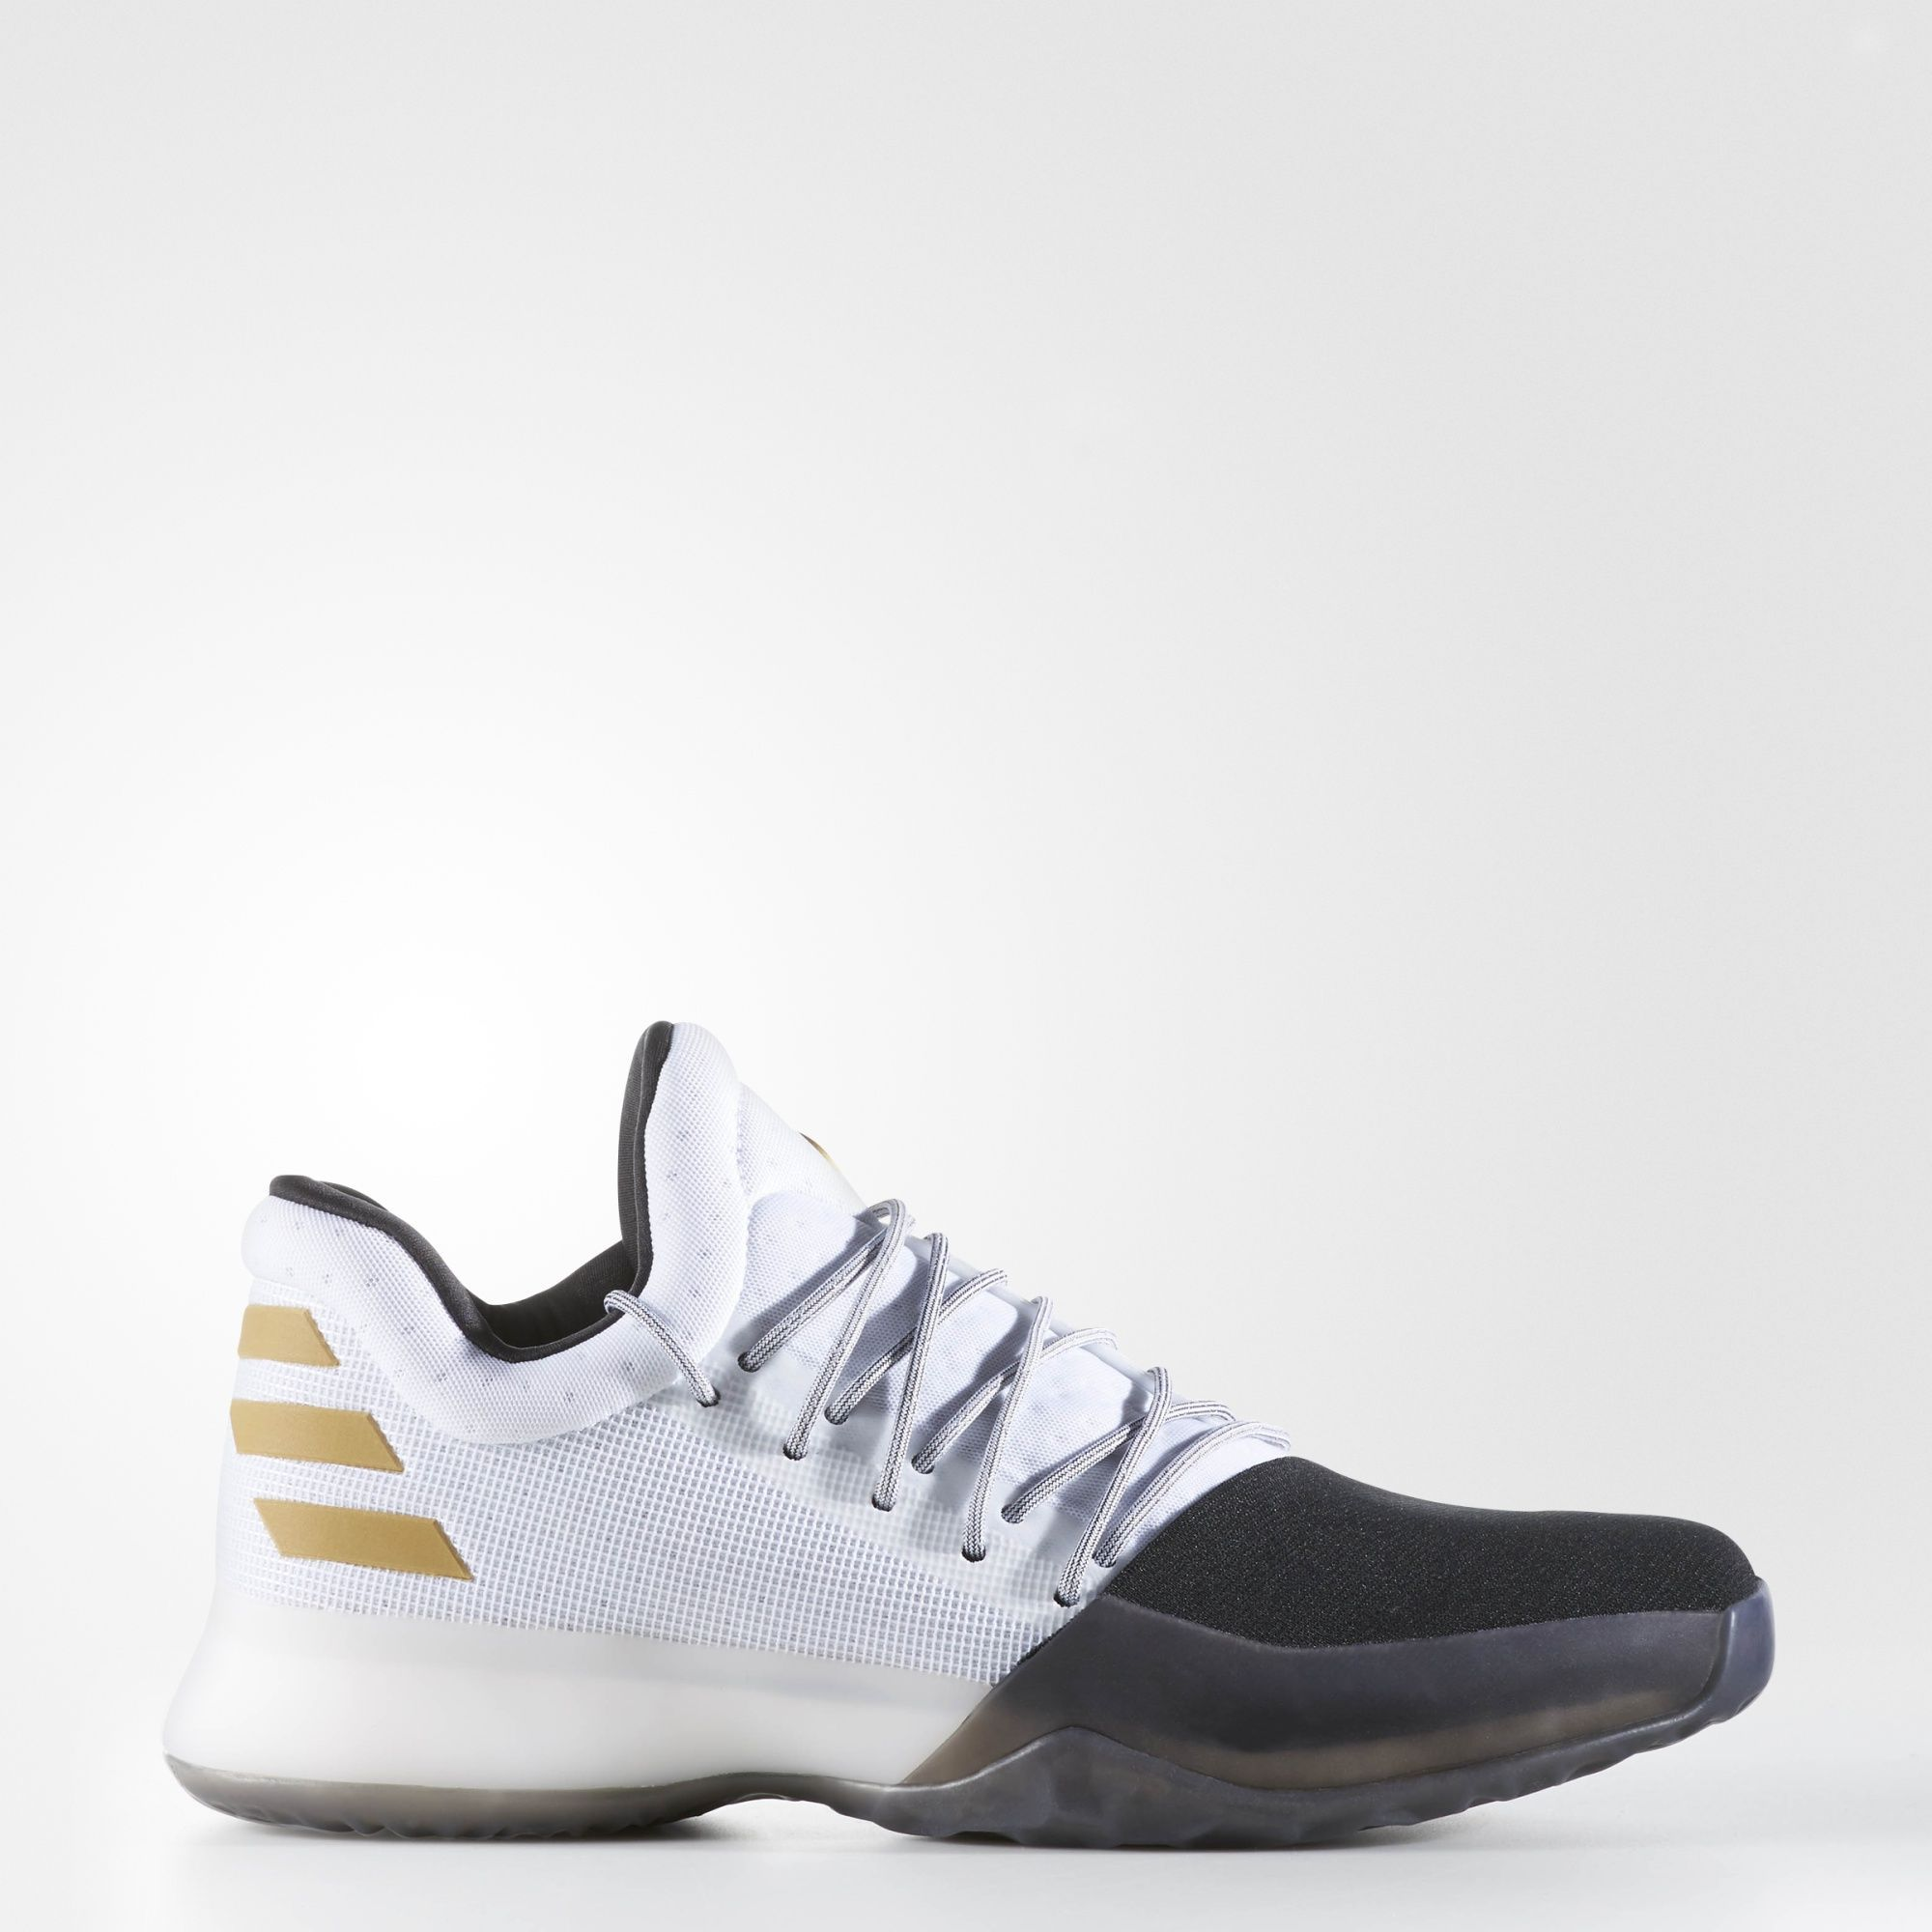 Shop our selection of adidas men's basketball shoes. See the latest styles  like the Dame 4 or Harden Vol.